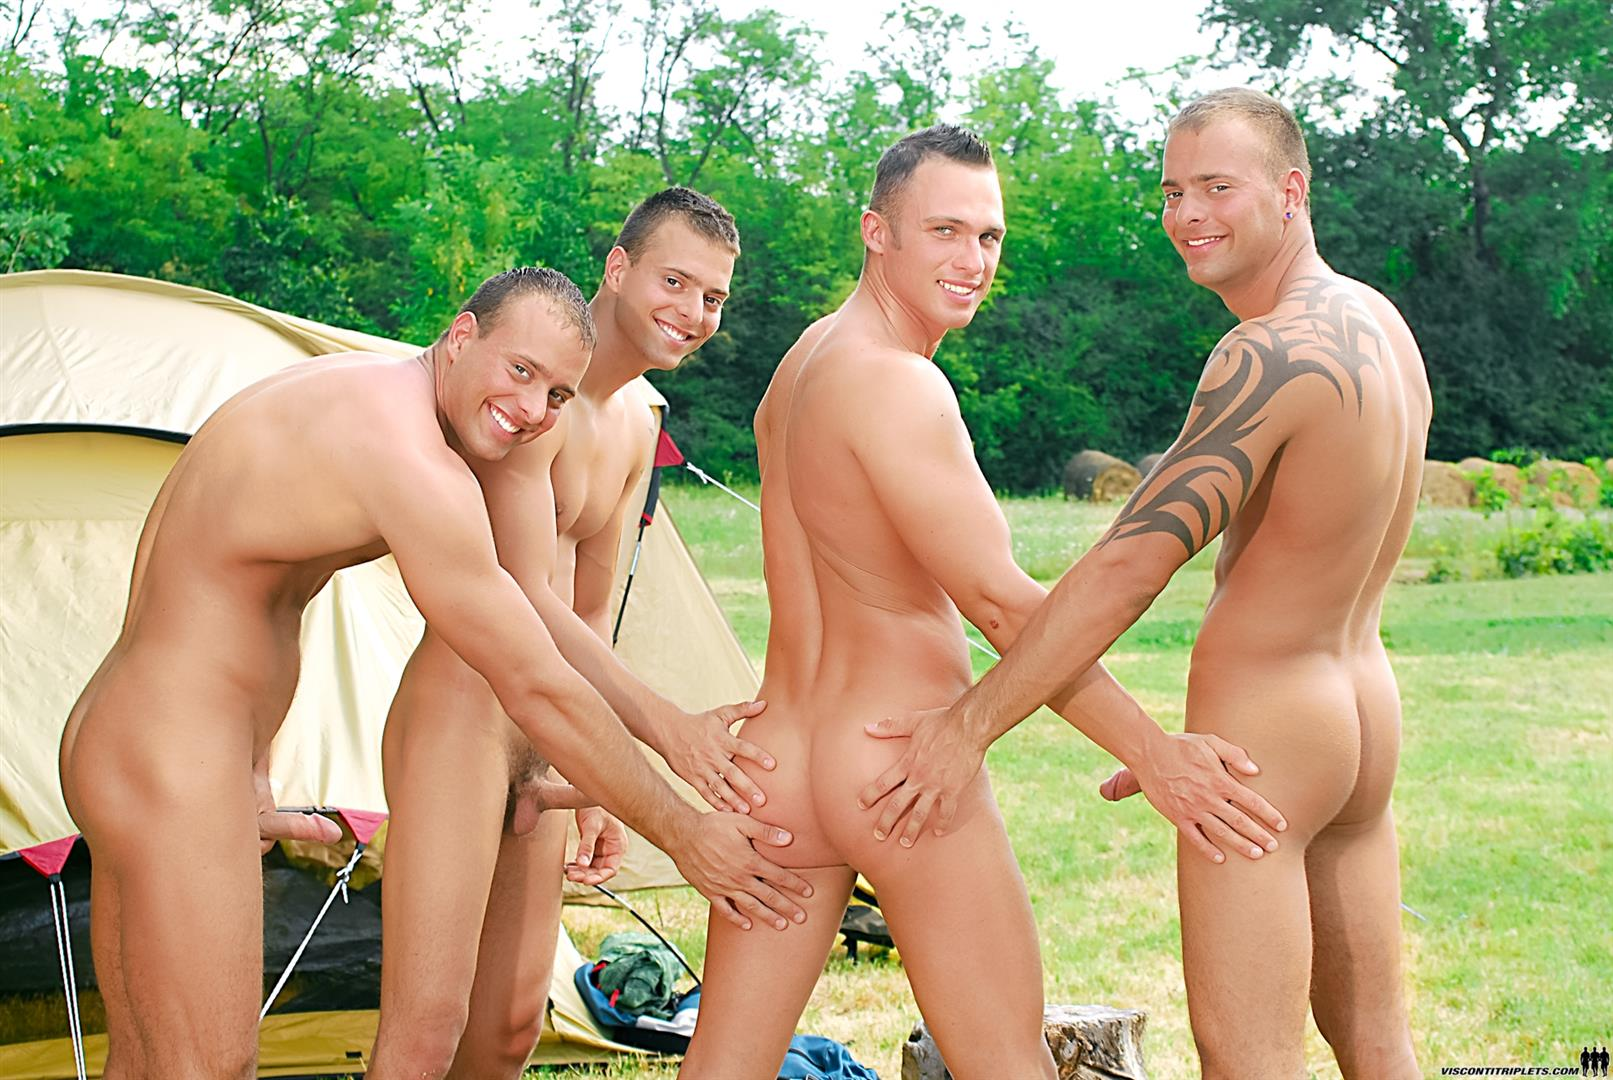 Visconti Triplets Jason Visconti Jimmy Visconti Joey Visconti Giuseppe Pardi Fucking During A Camping Trip Amateur Gay Porn 04 Visconti Triplets Tag Team Some Muscle Ass While Camping